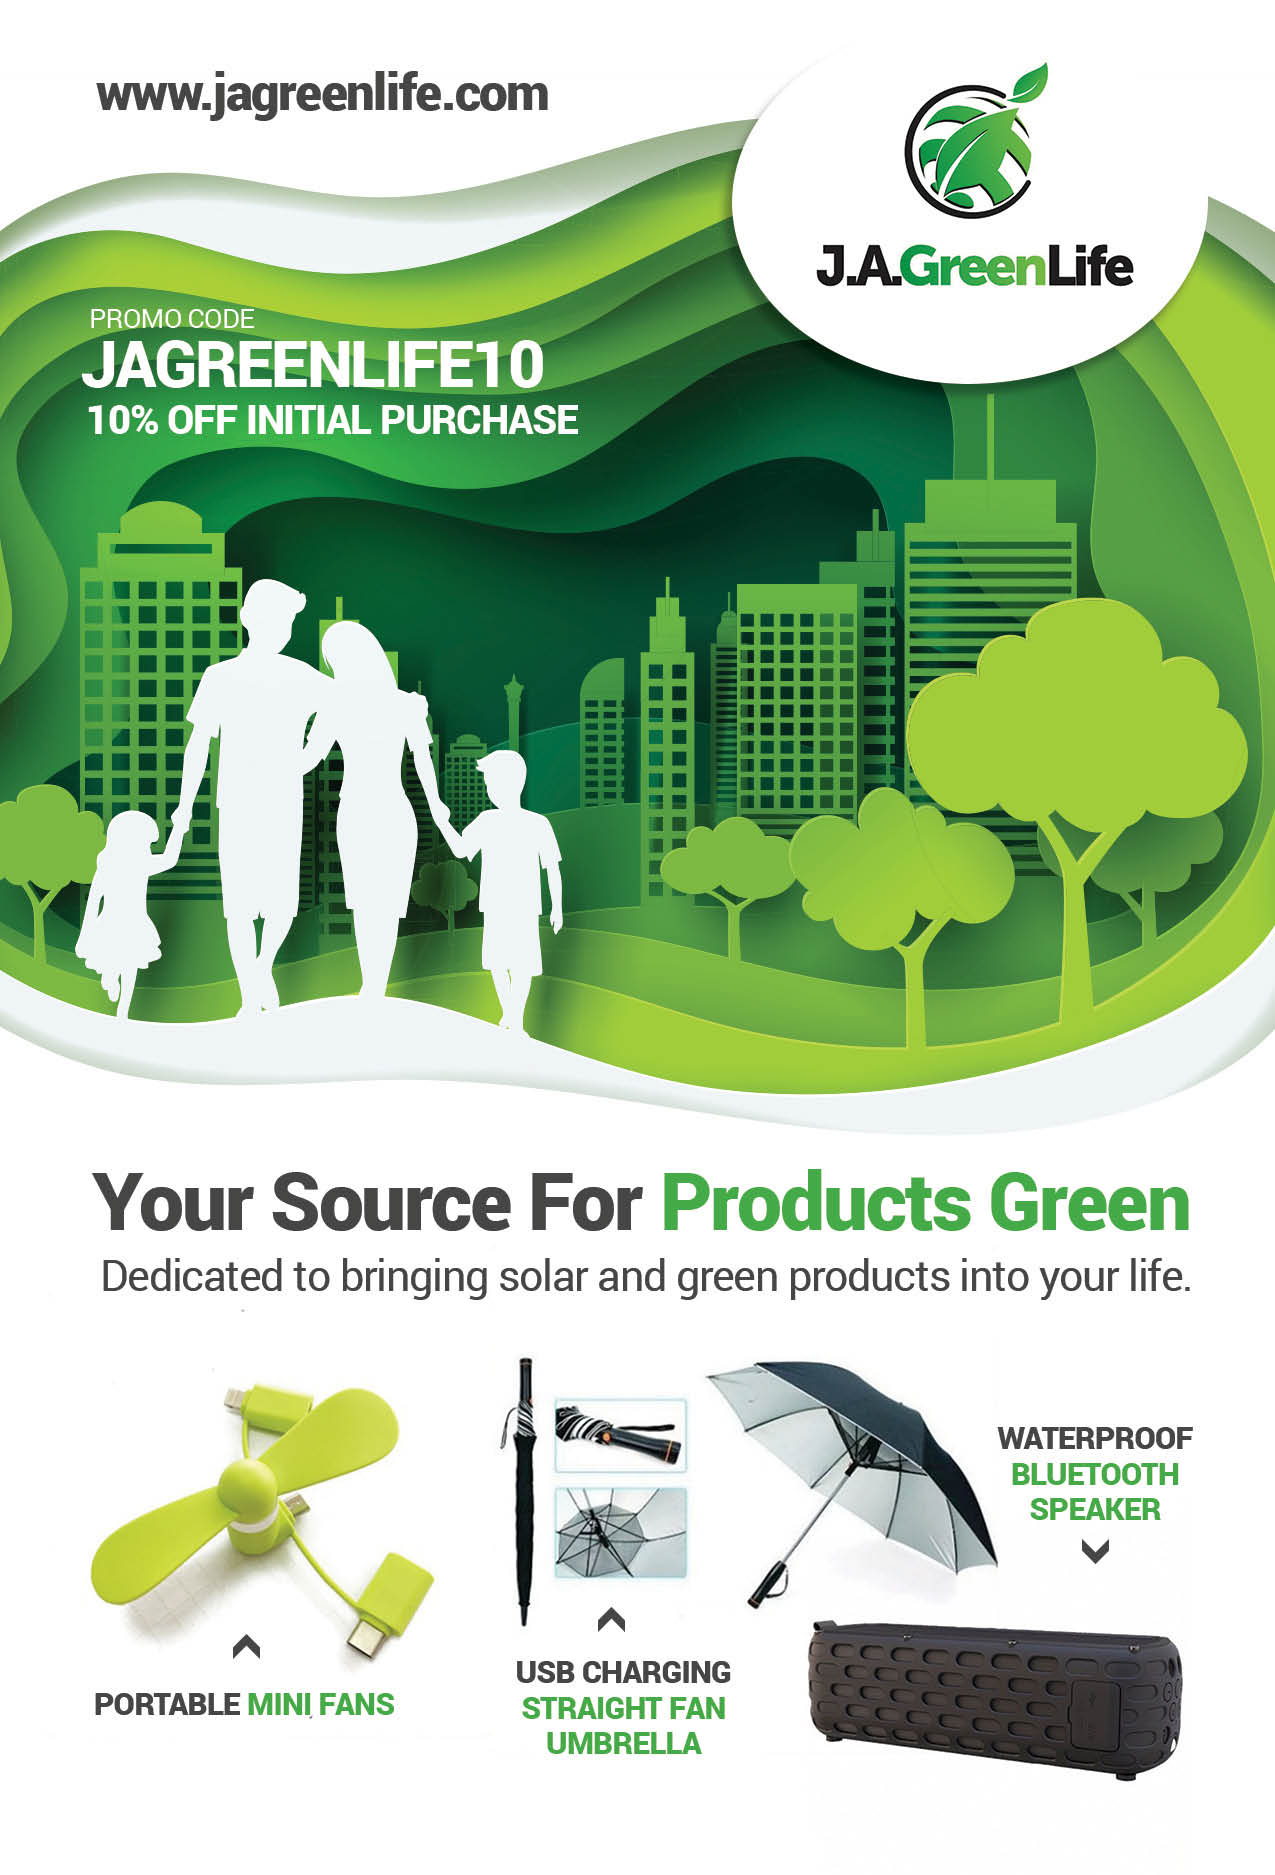 Solar powered products for a greener life experience